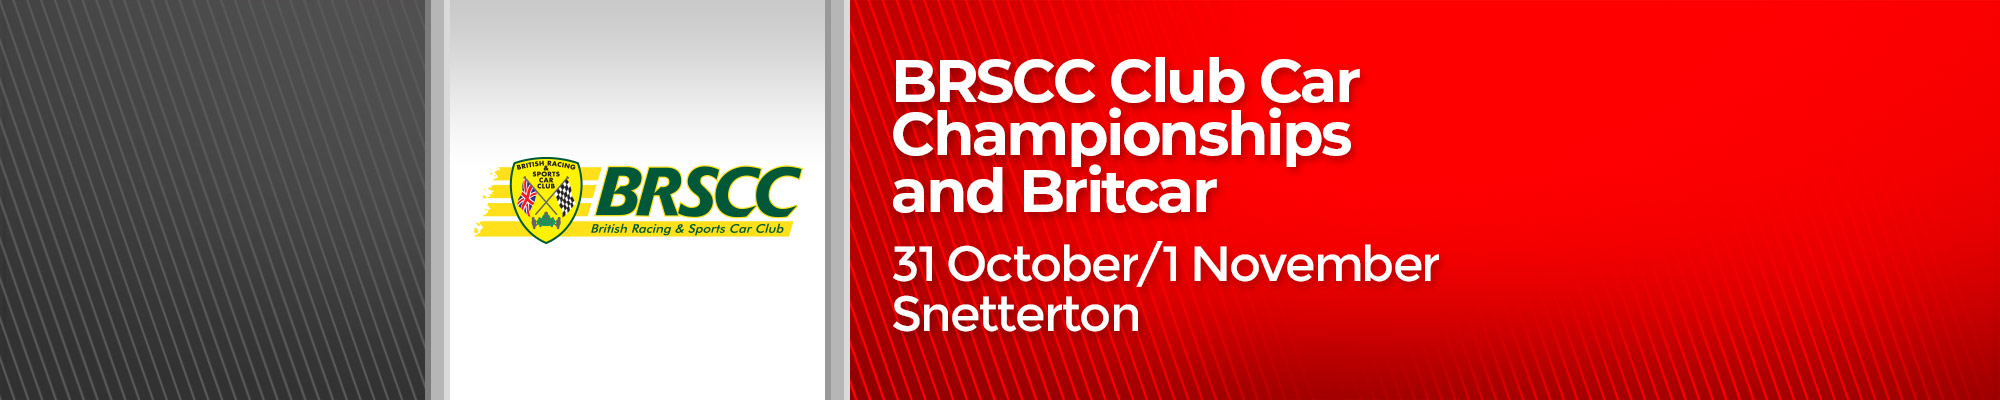 BRSCC - Fun Cup and MX-5 Race Weekend